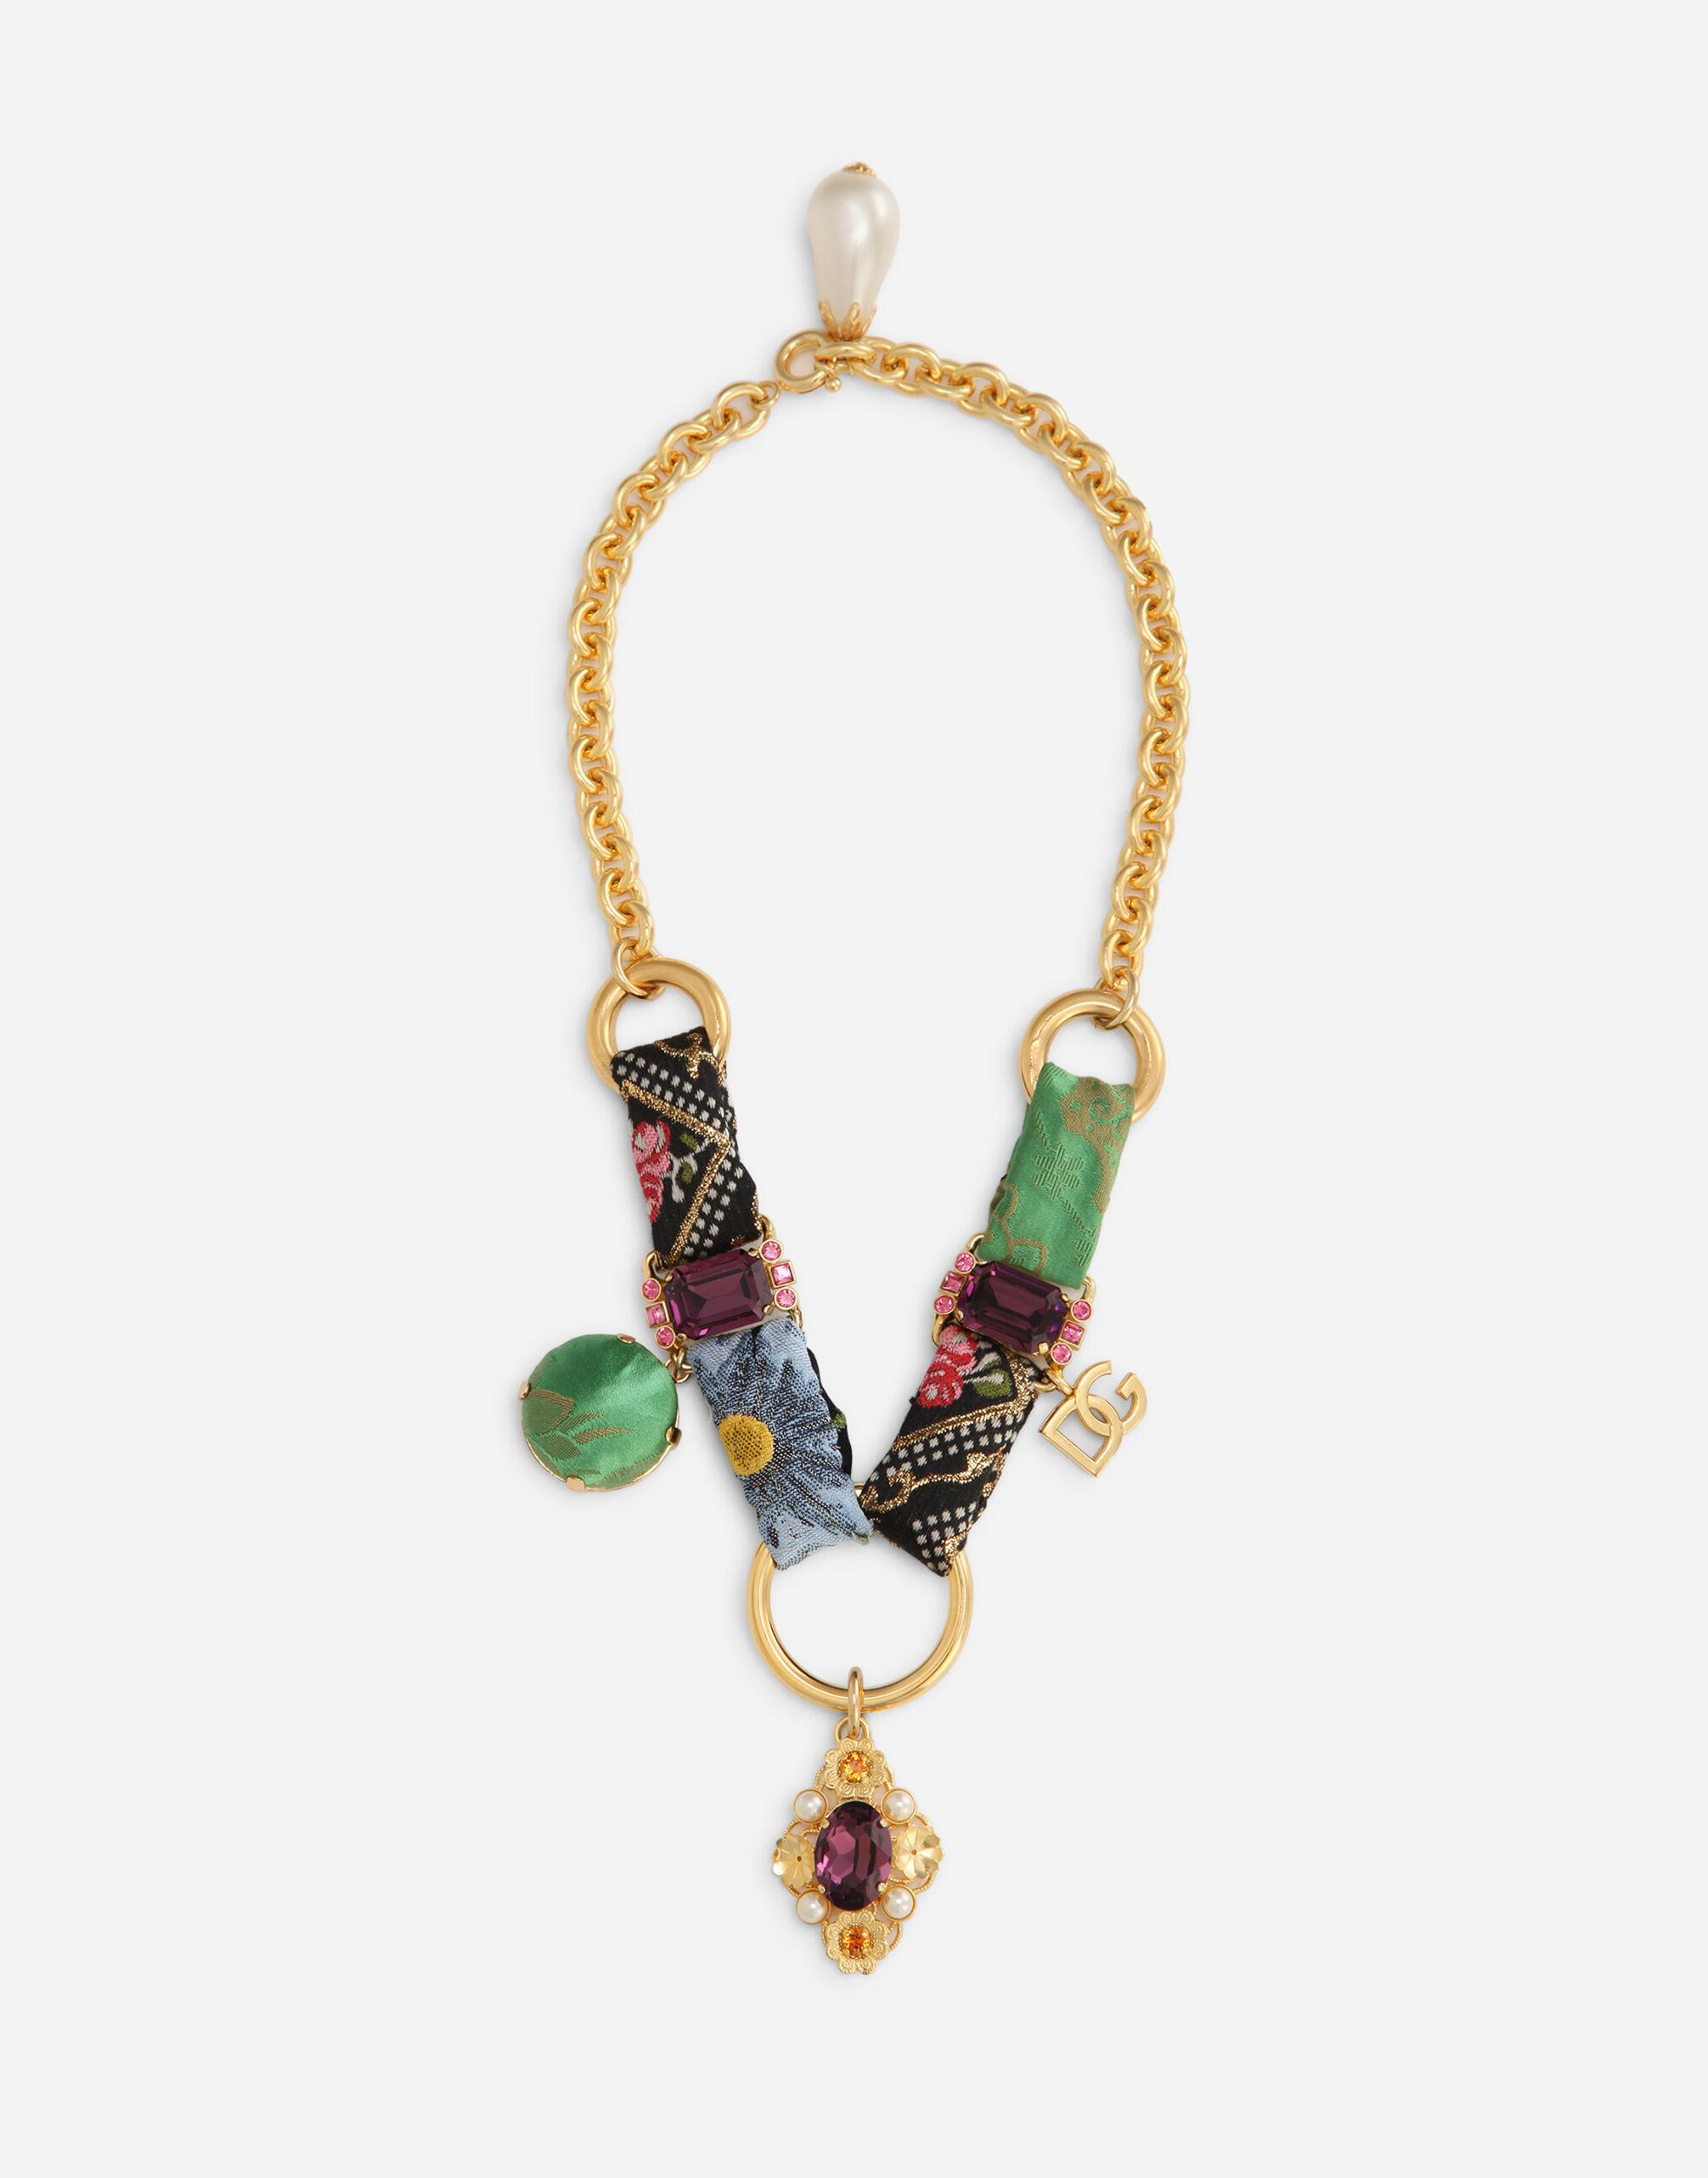 Short necklace with patchwork details and rhinestones